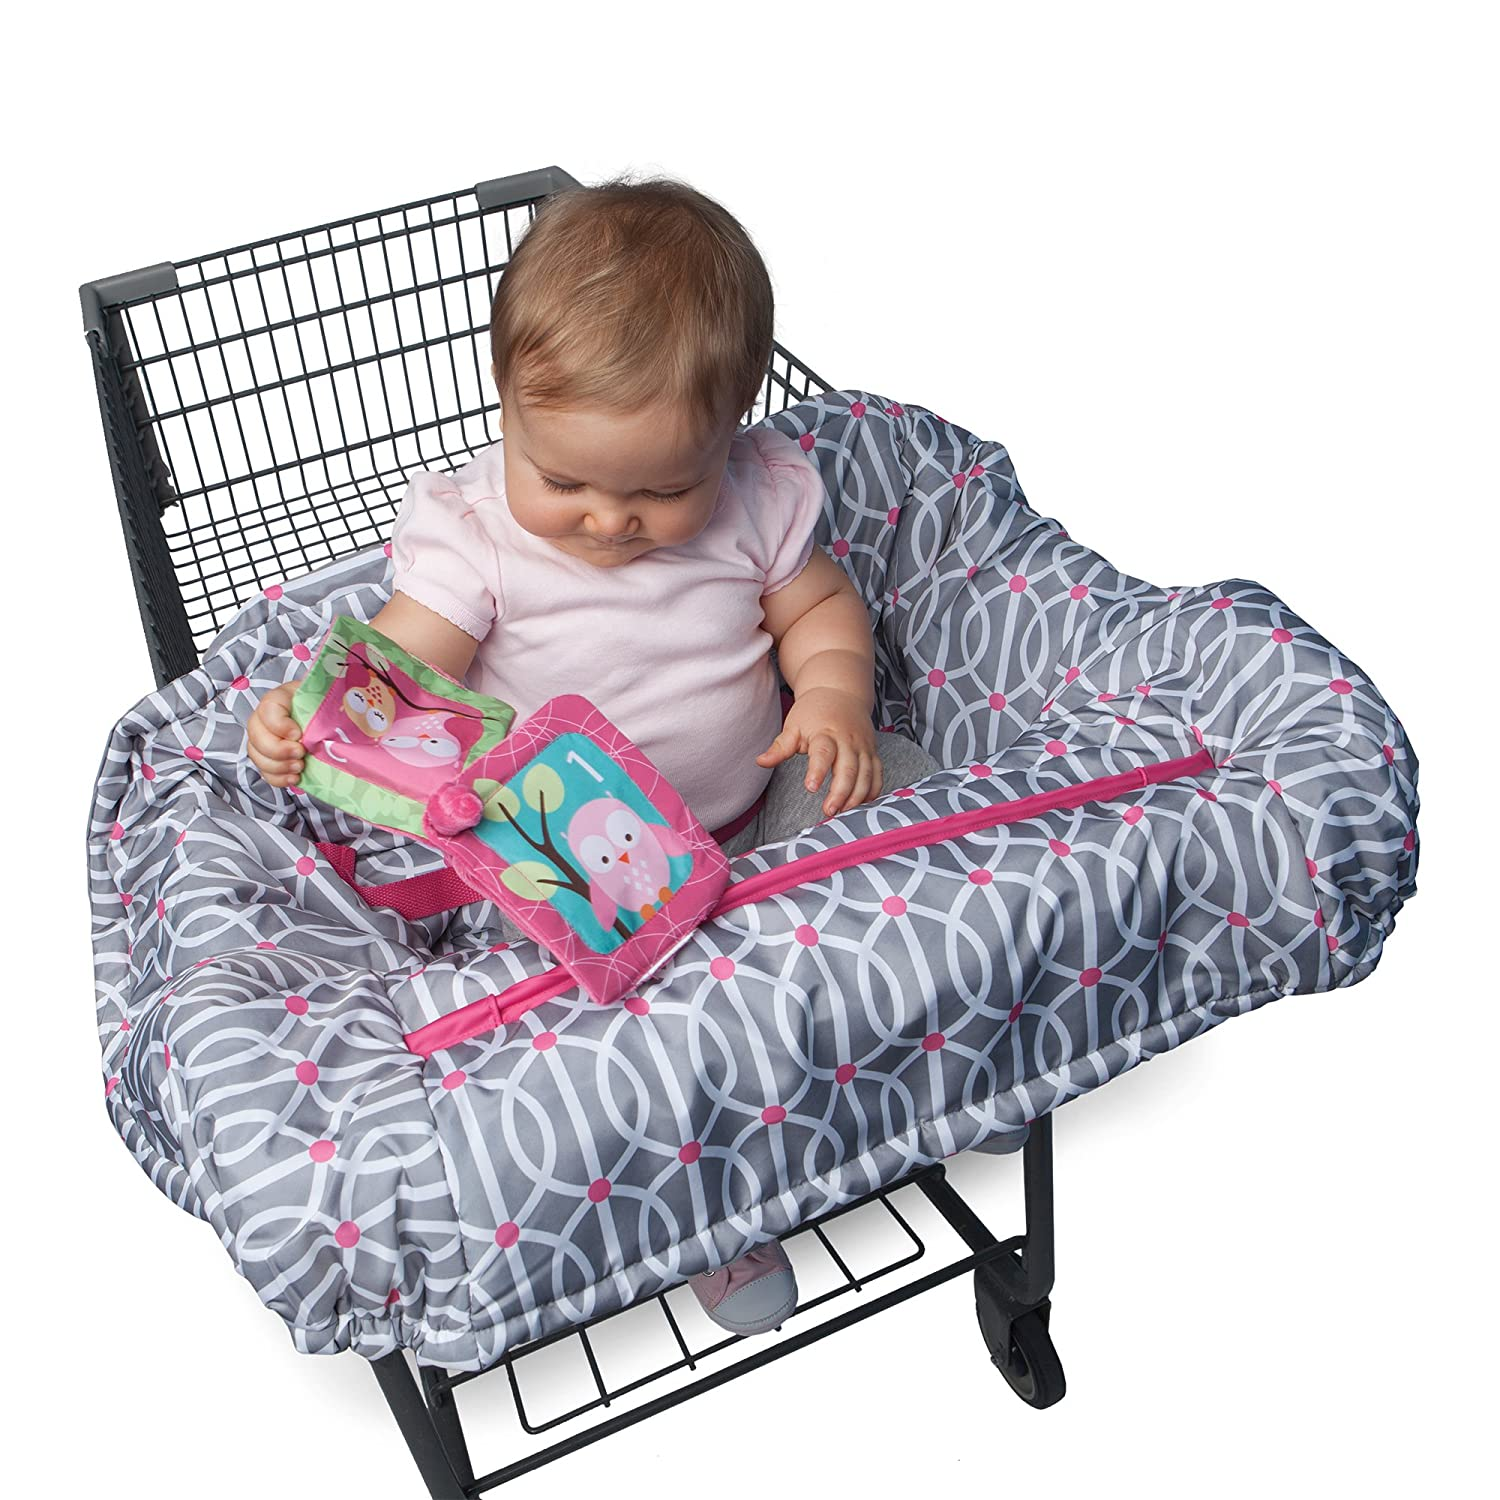 Boppy Shopping Cart and High Chair Cover, Park Gate Pink 7300475K 3PK